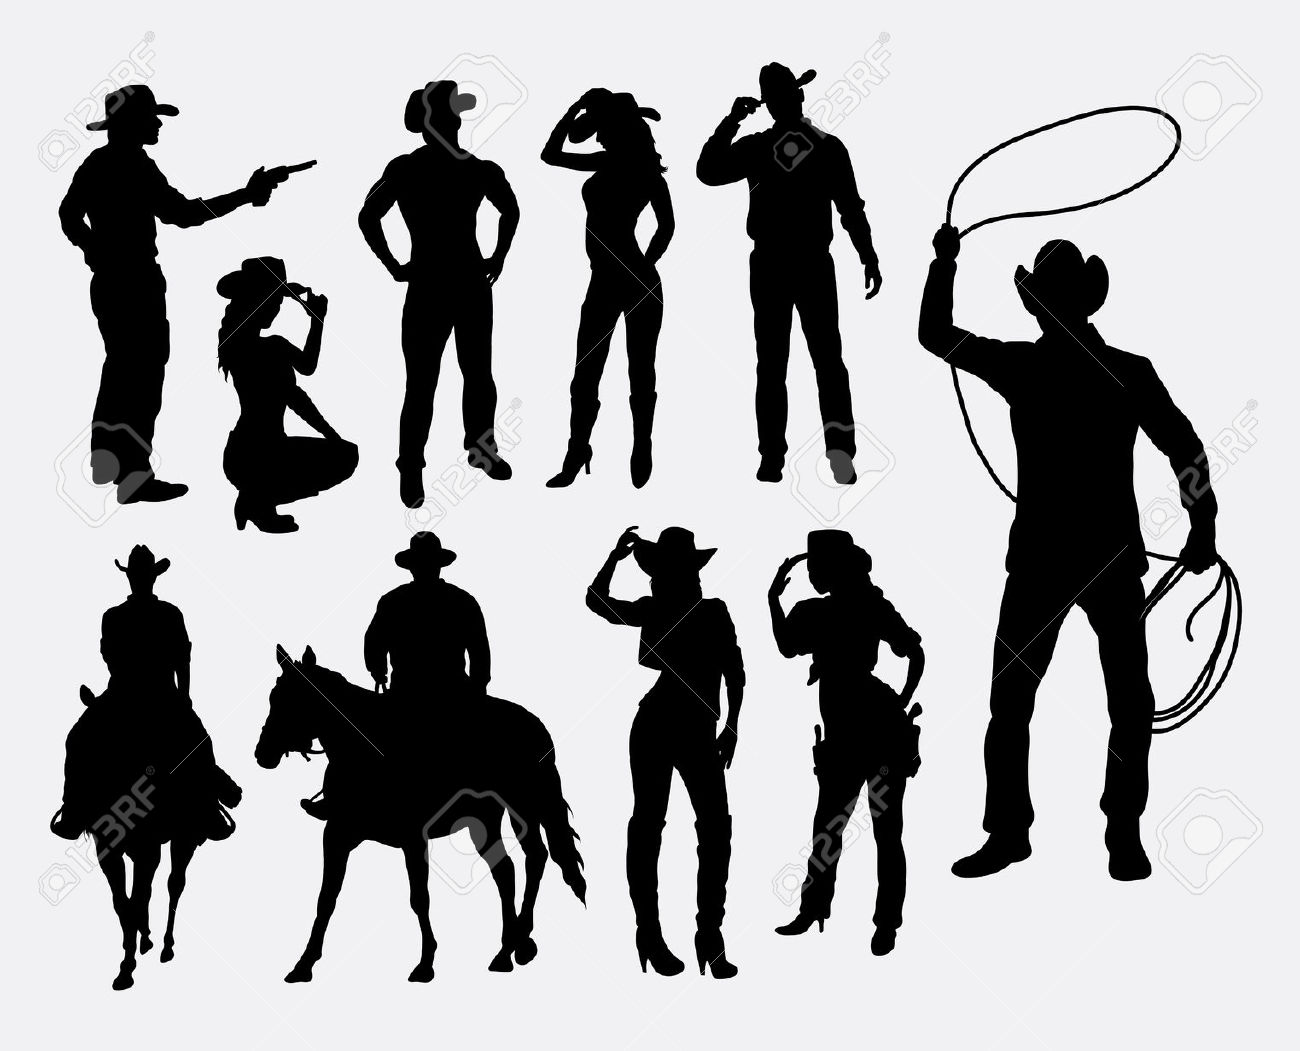 Cowboy silhouette patterns free clipart. Cowboys in a row